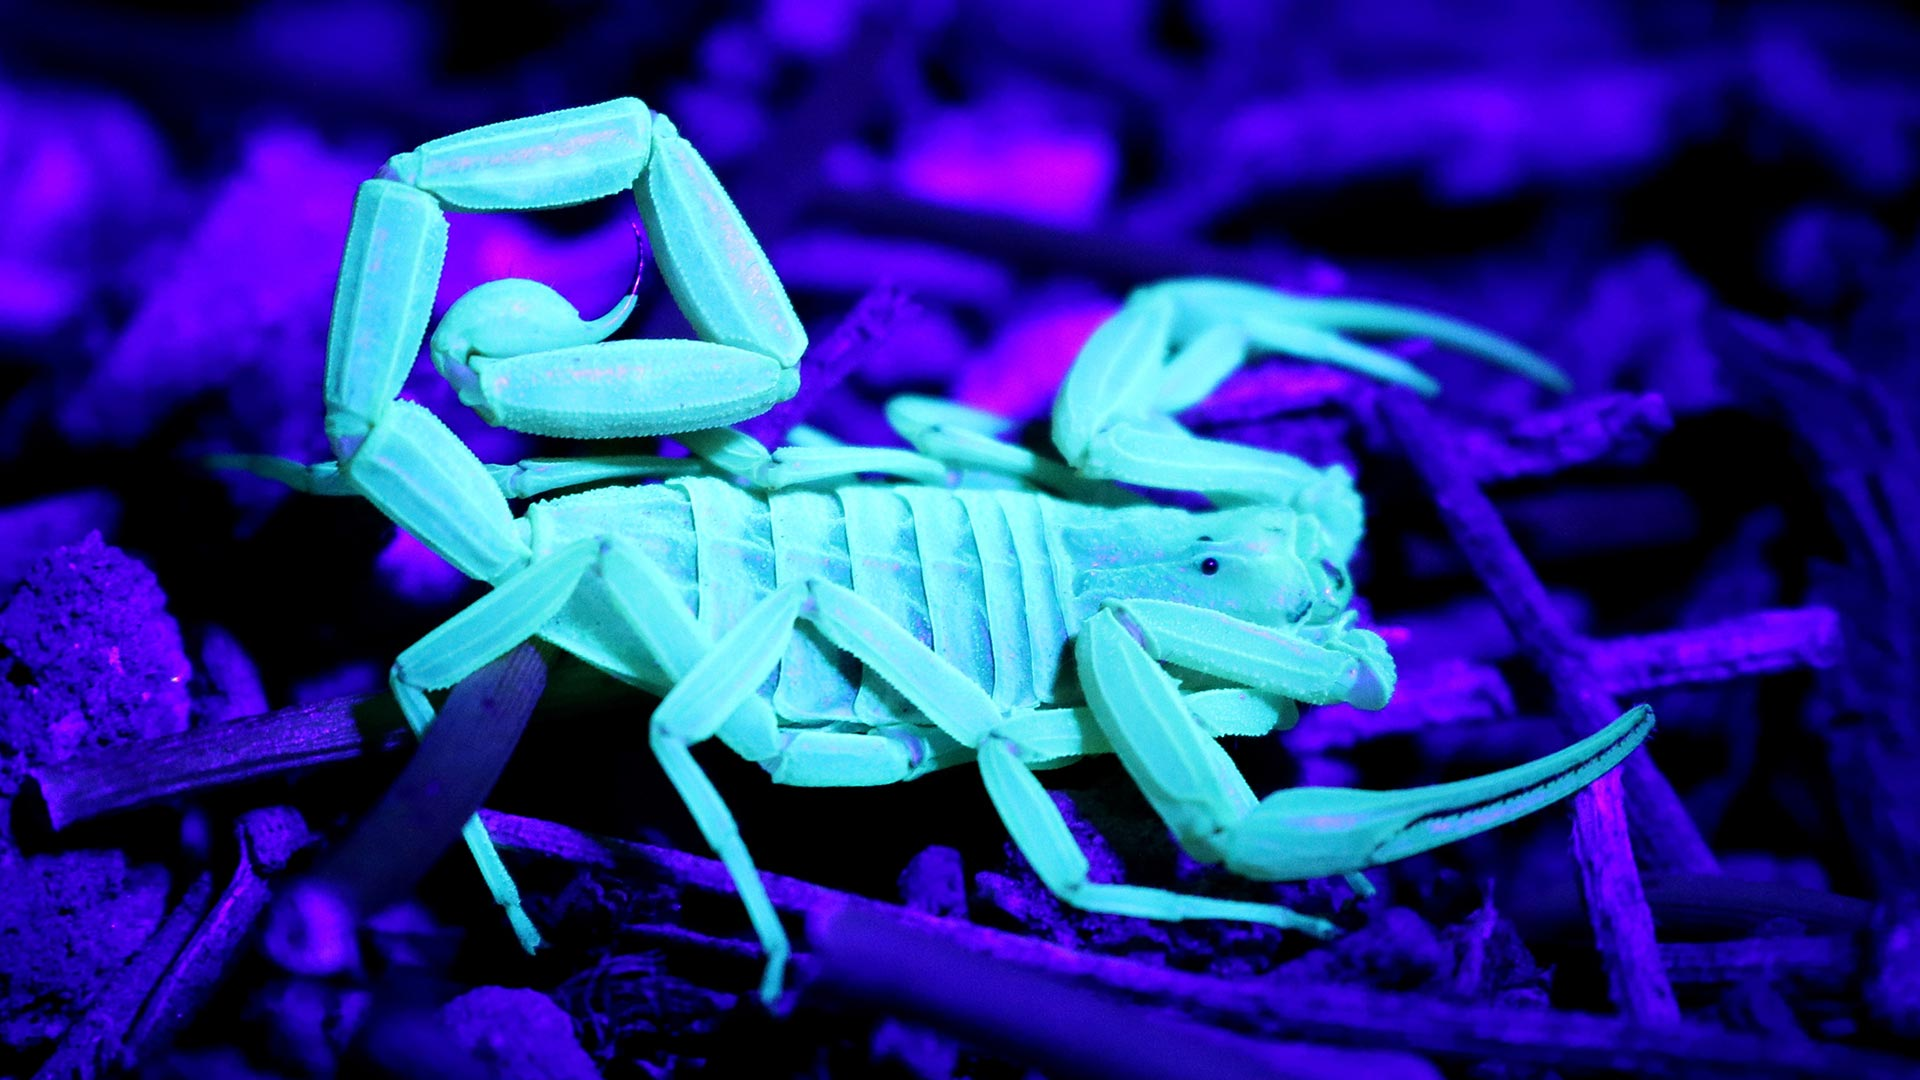 Bark scorpions glow white under a black light.